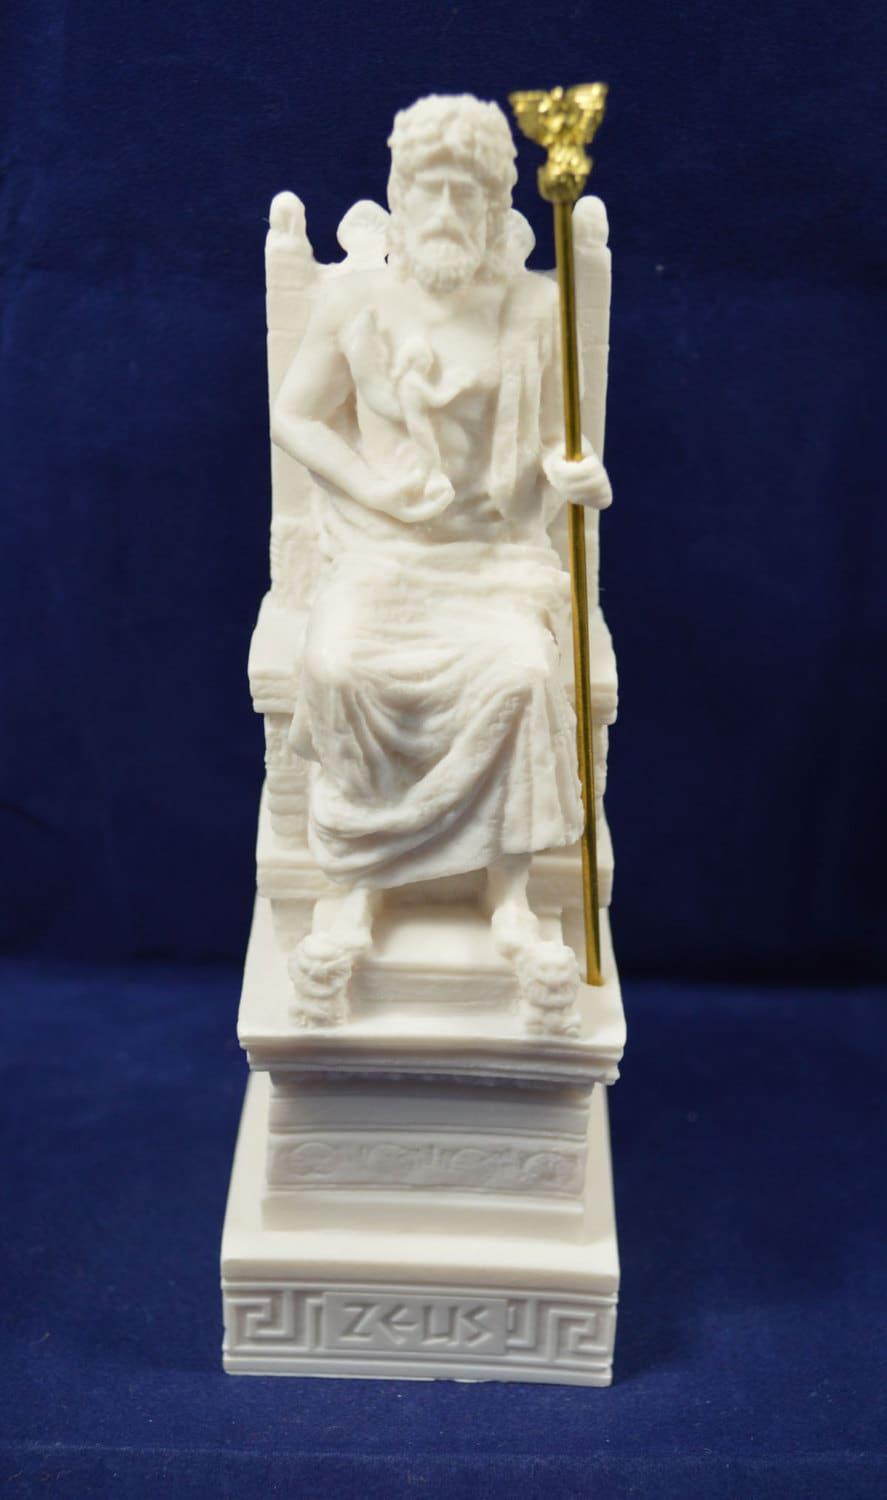 Zeus throne sculpture statue ancient Greek God king of all